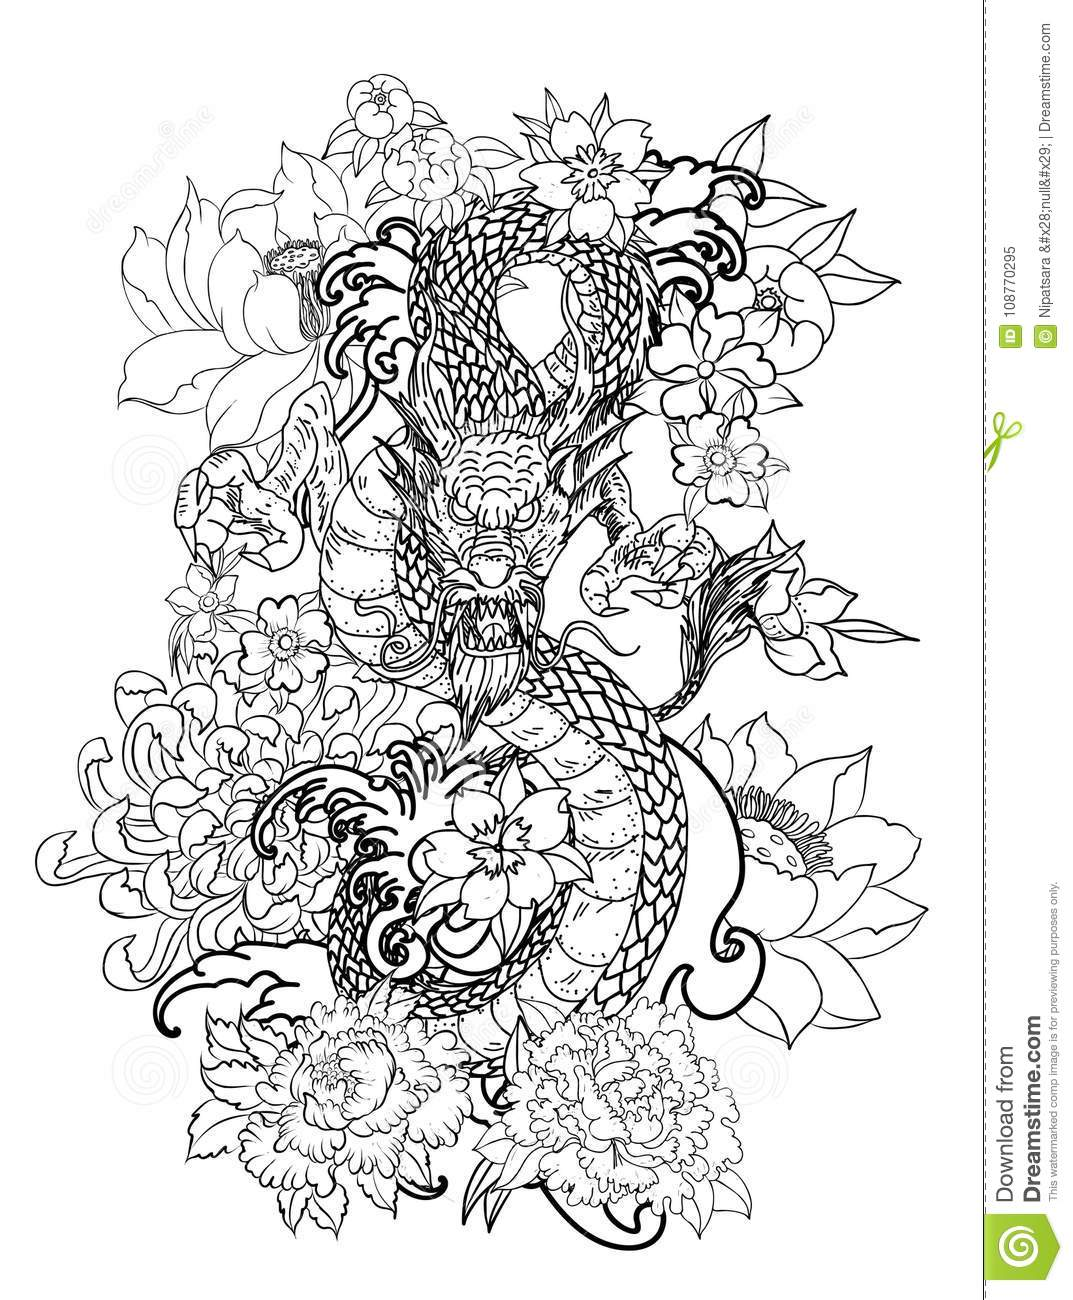 The Dragon And Koi Carp Fish With Water Splash And Peony Flower